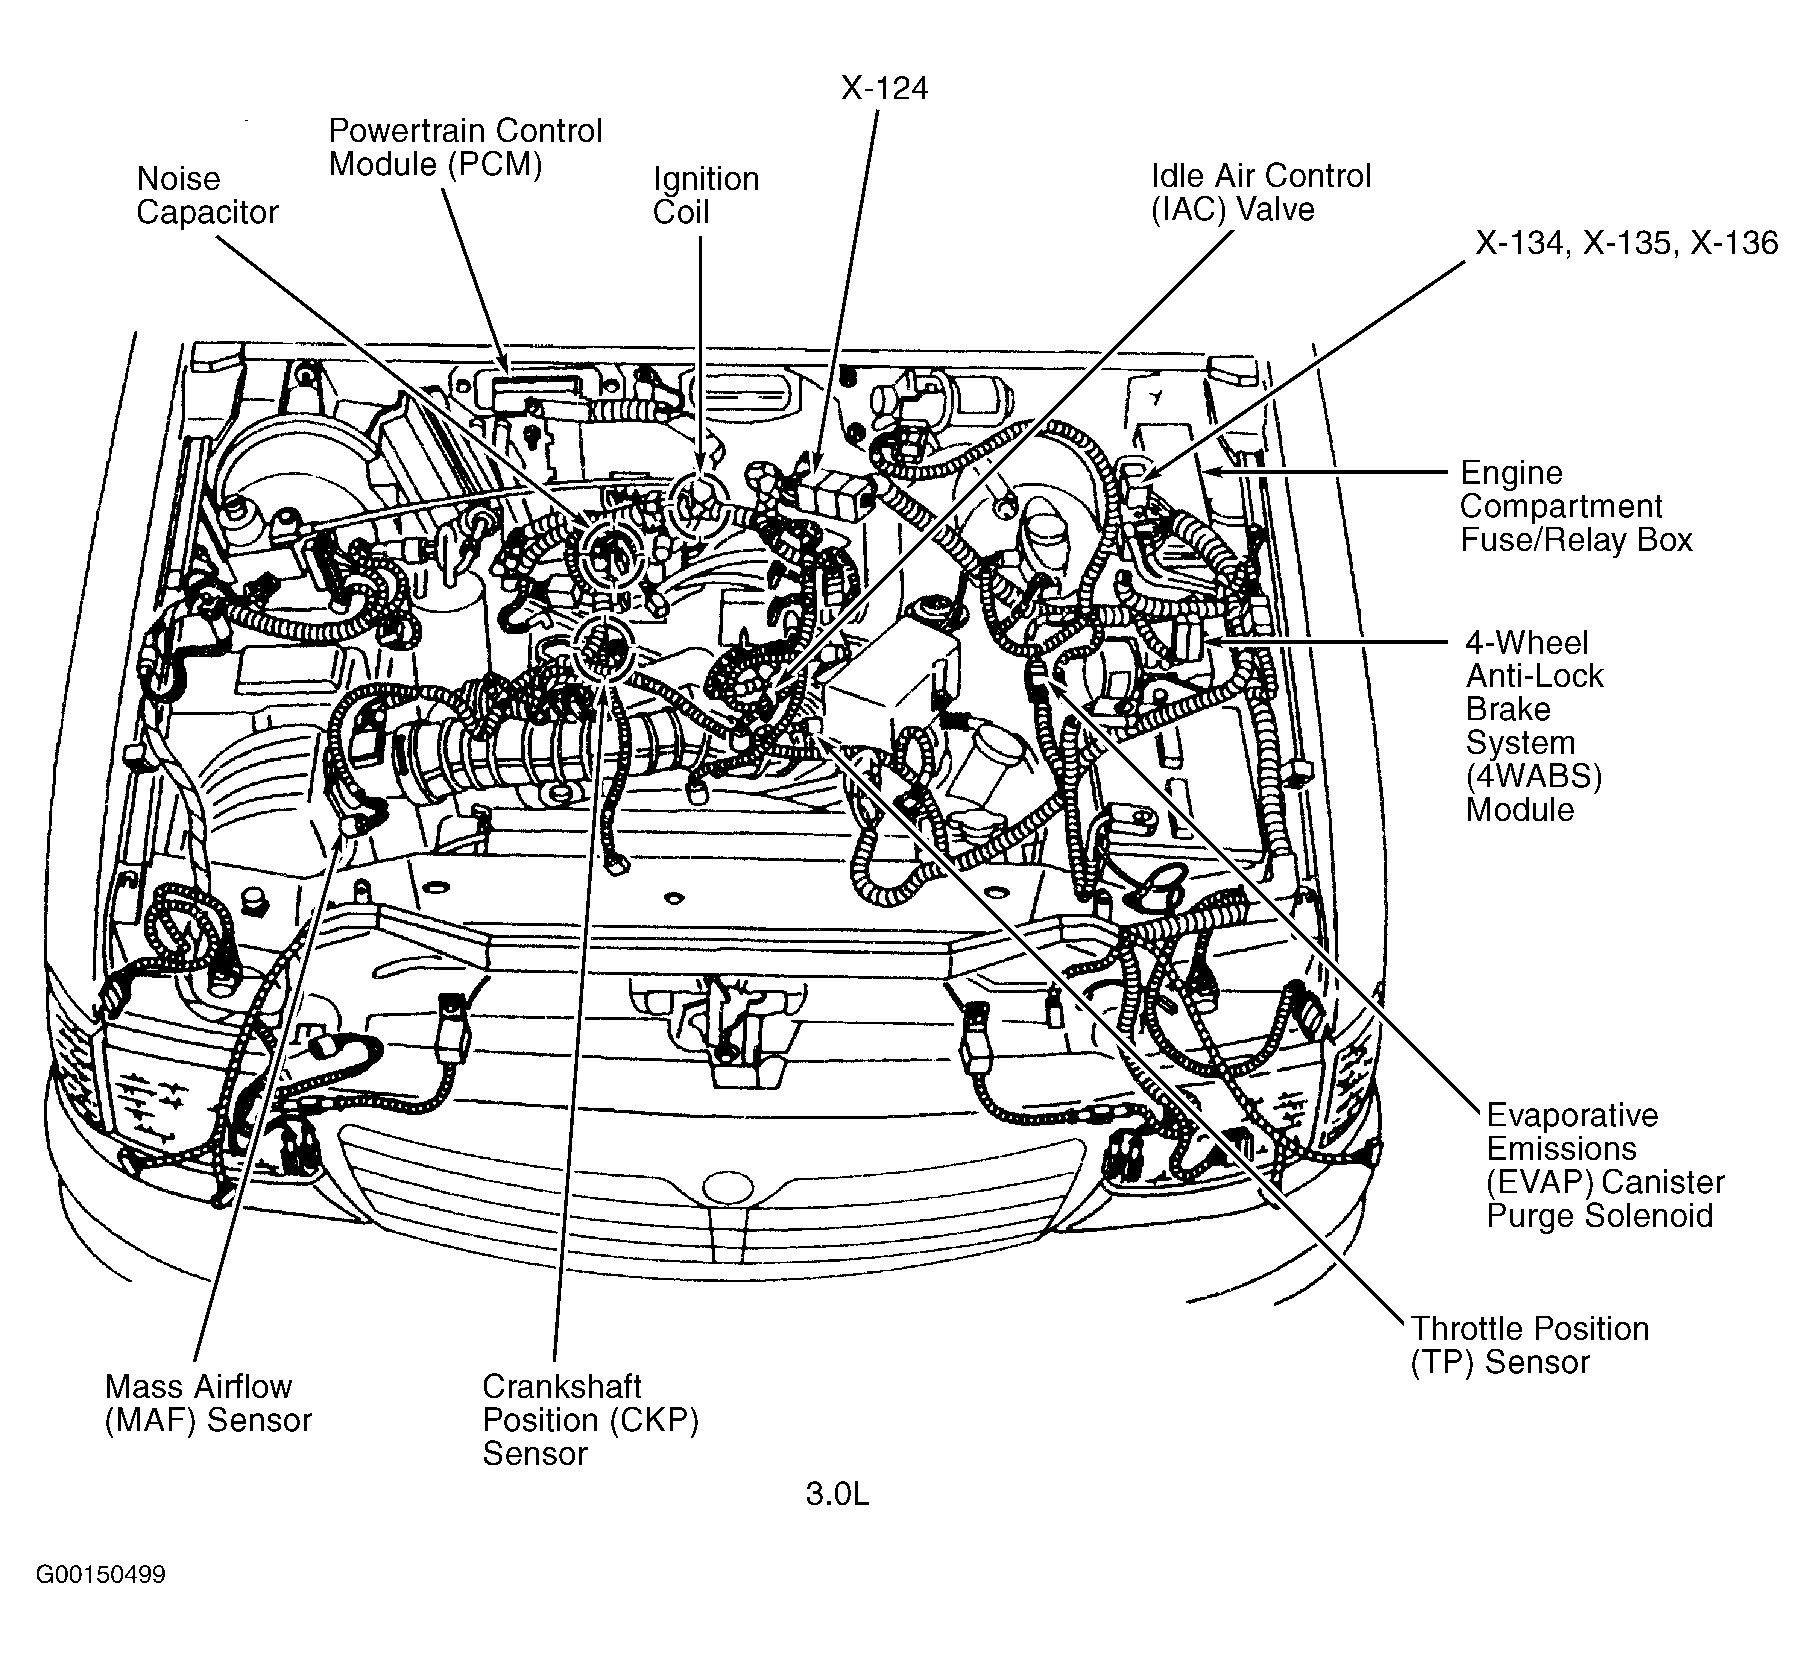 2002 Mazda Protege Engine Diagram Wiring Diagrams Konsult